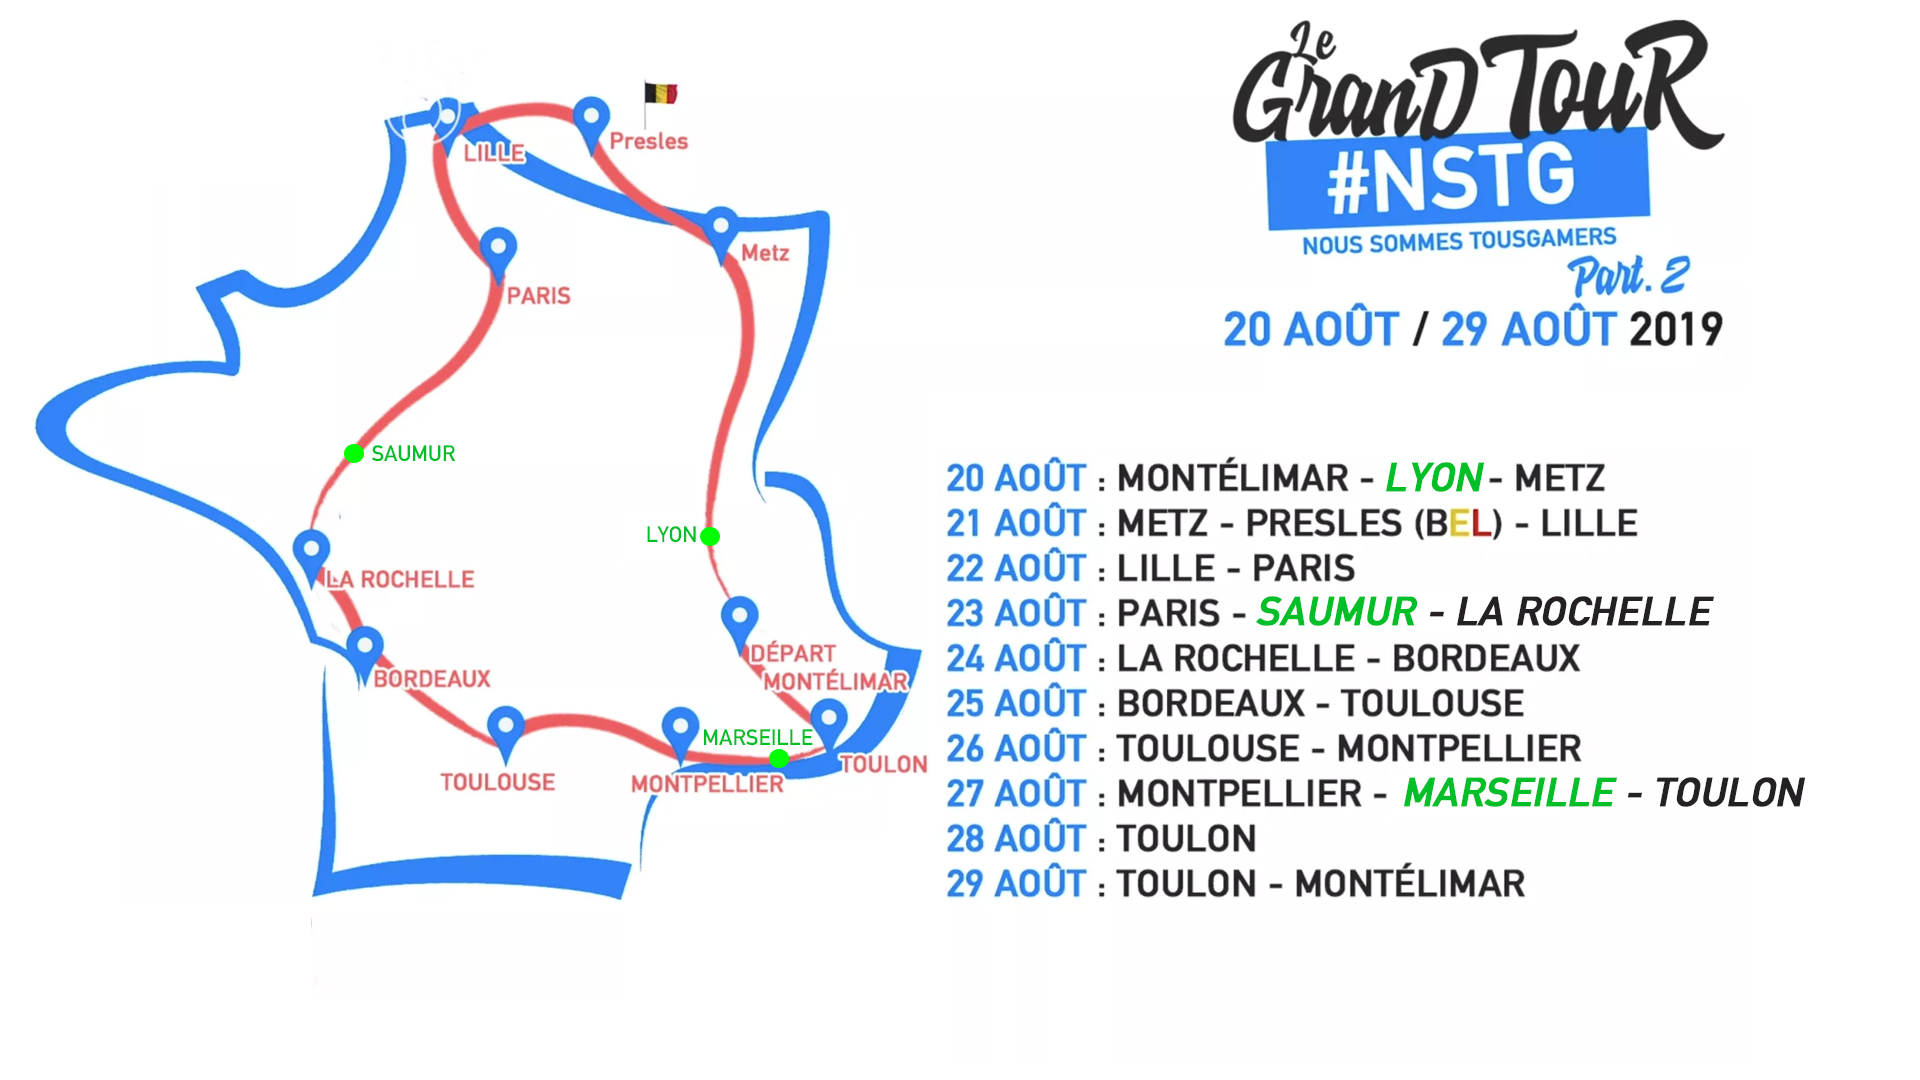 Grand Tour #NSTG Part.2 Trajet